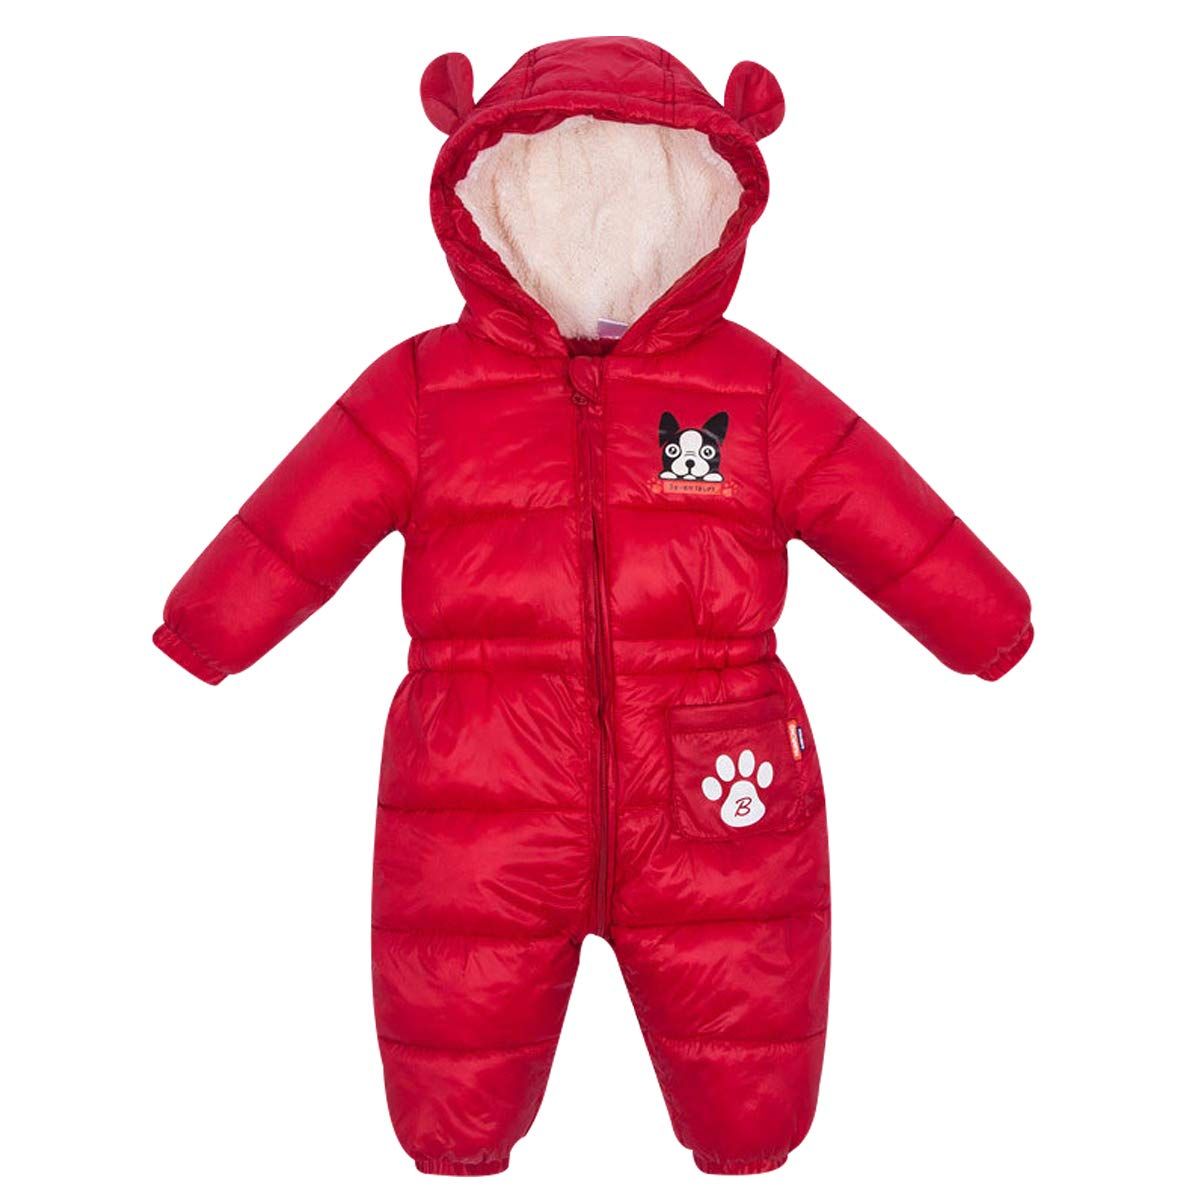 Famuka Baby Boys Girls Winter Snowsuit Hooded Warm Outerwear Romper